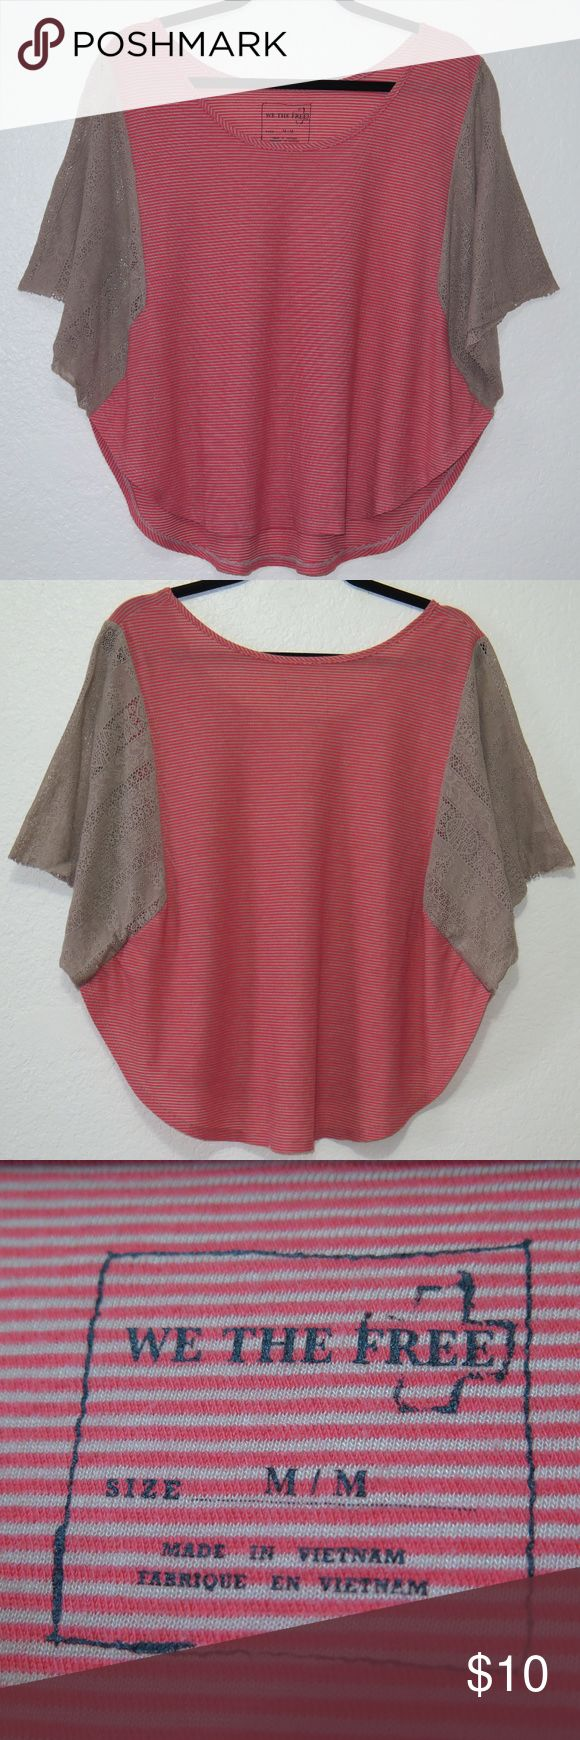 "We The Free Batwing Top Red and beige knit striped top with lace batwing sleeves. Normal wear. Has minor fraying from normal wash/wear throughout sleeves, as shown. Good condition.   Mannequin measurements: 5'10"" - Bust: 32"" - Waist: 24"" - Hips: 33"" Free People Tops"